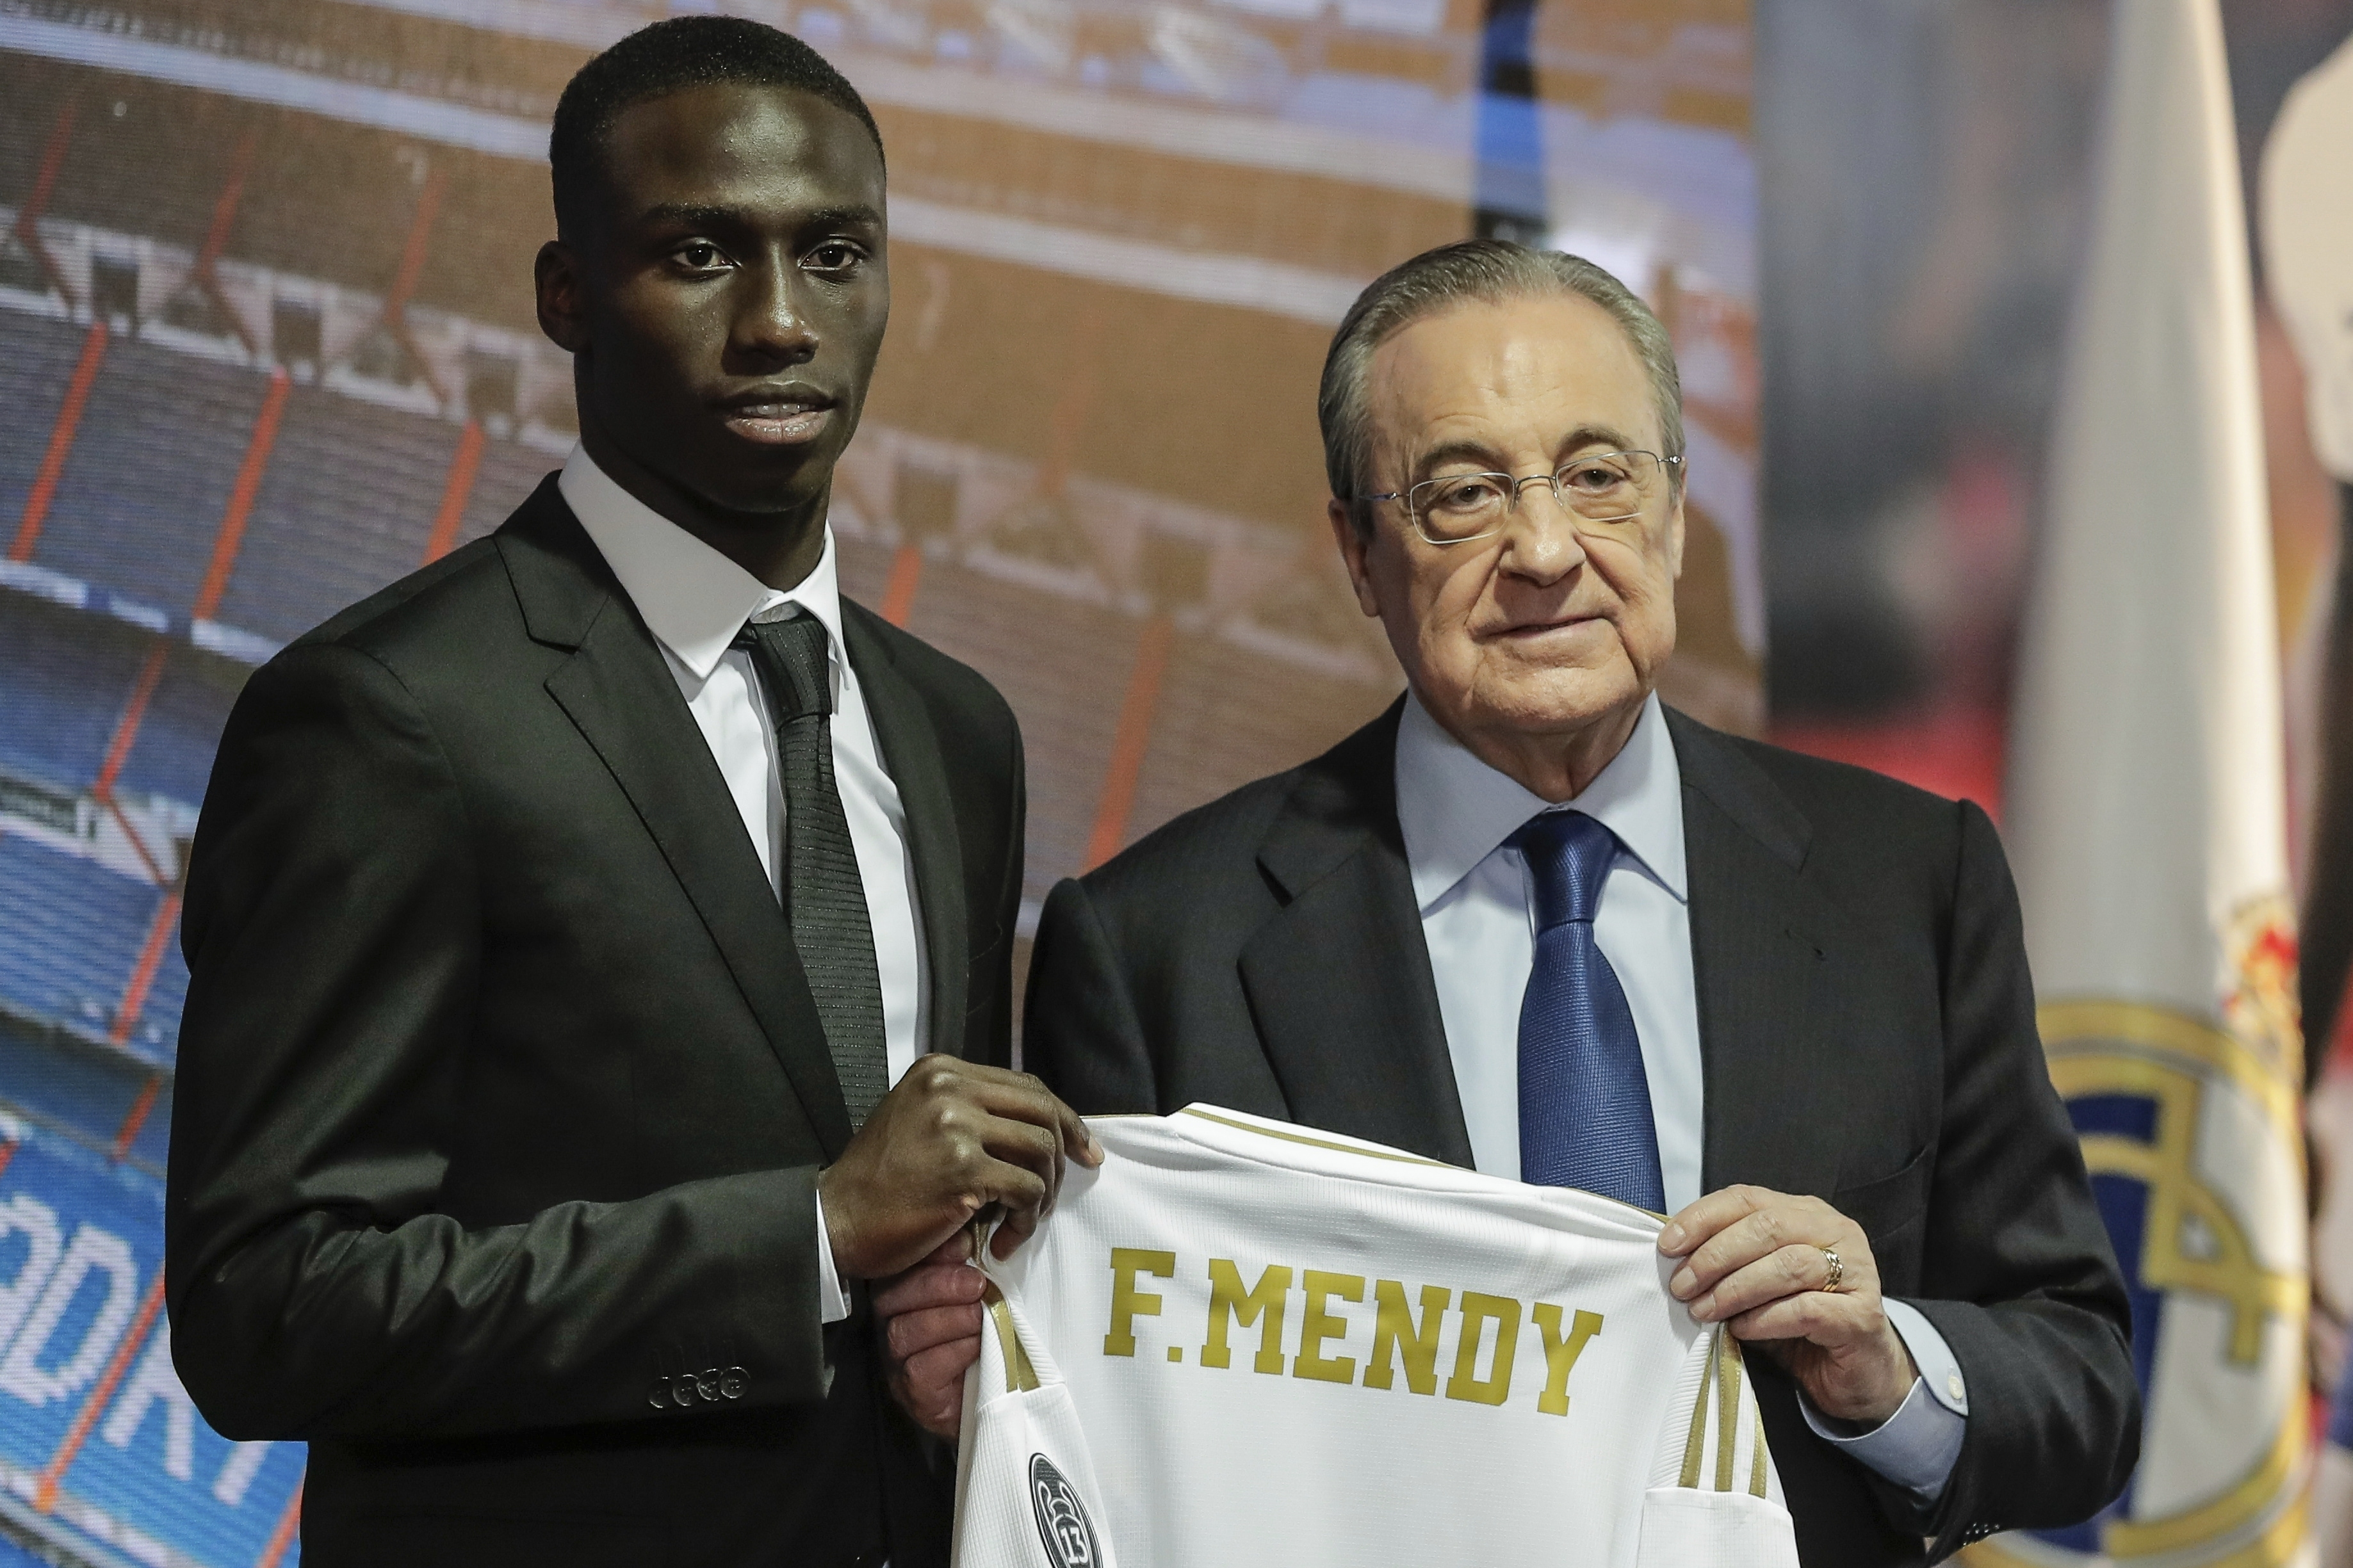 Ferland Mendy at his unveiling. Image: PA Images